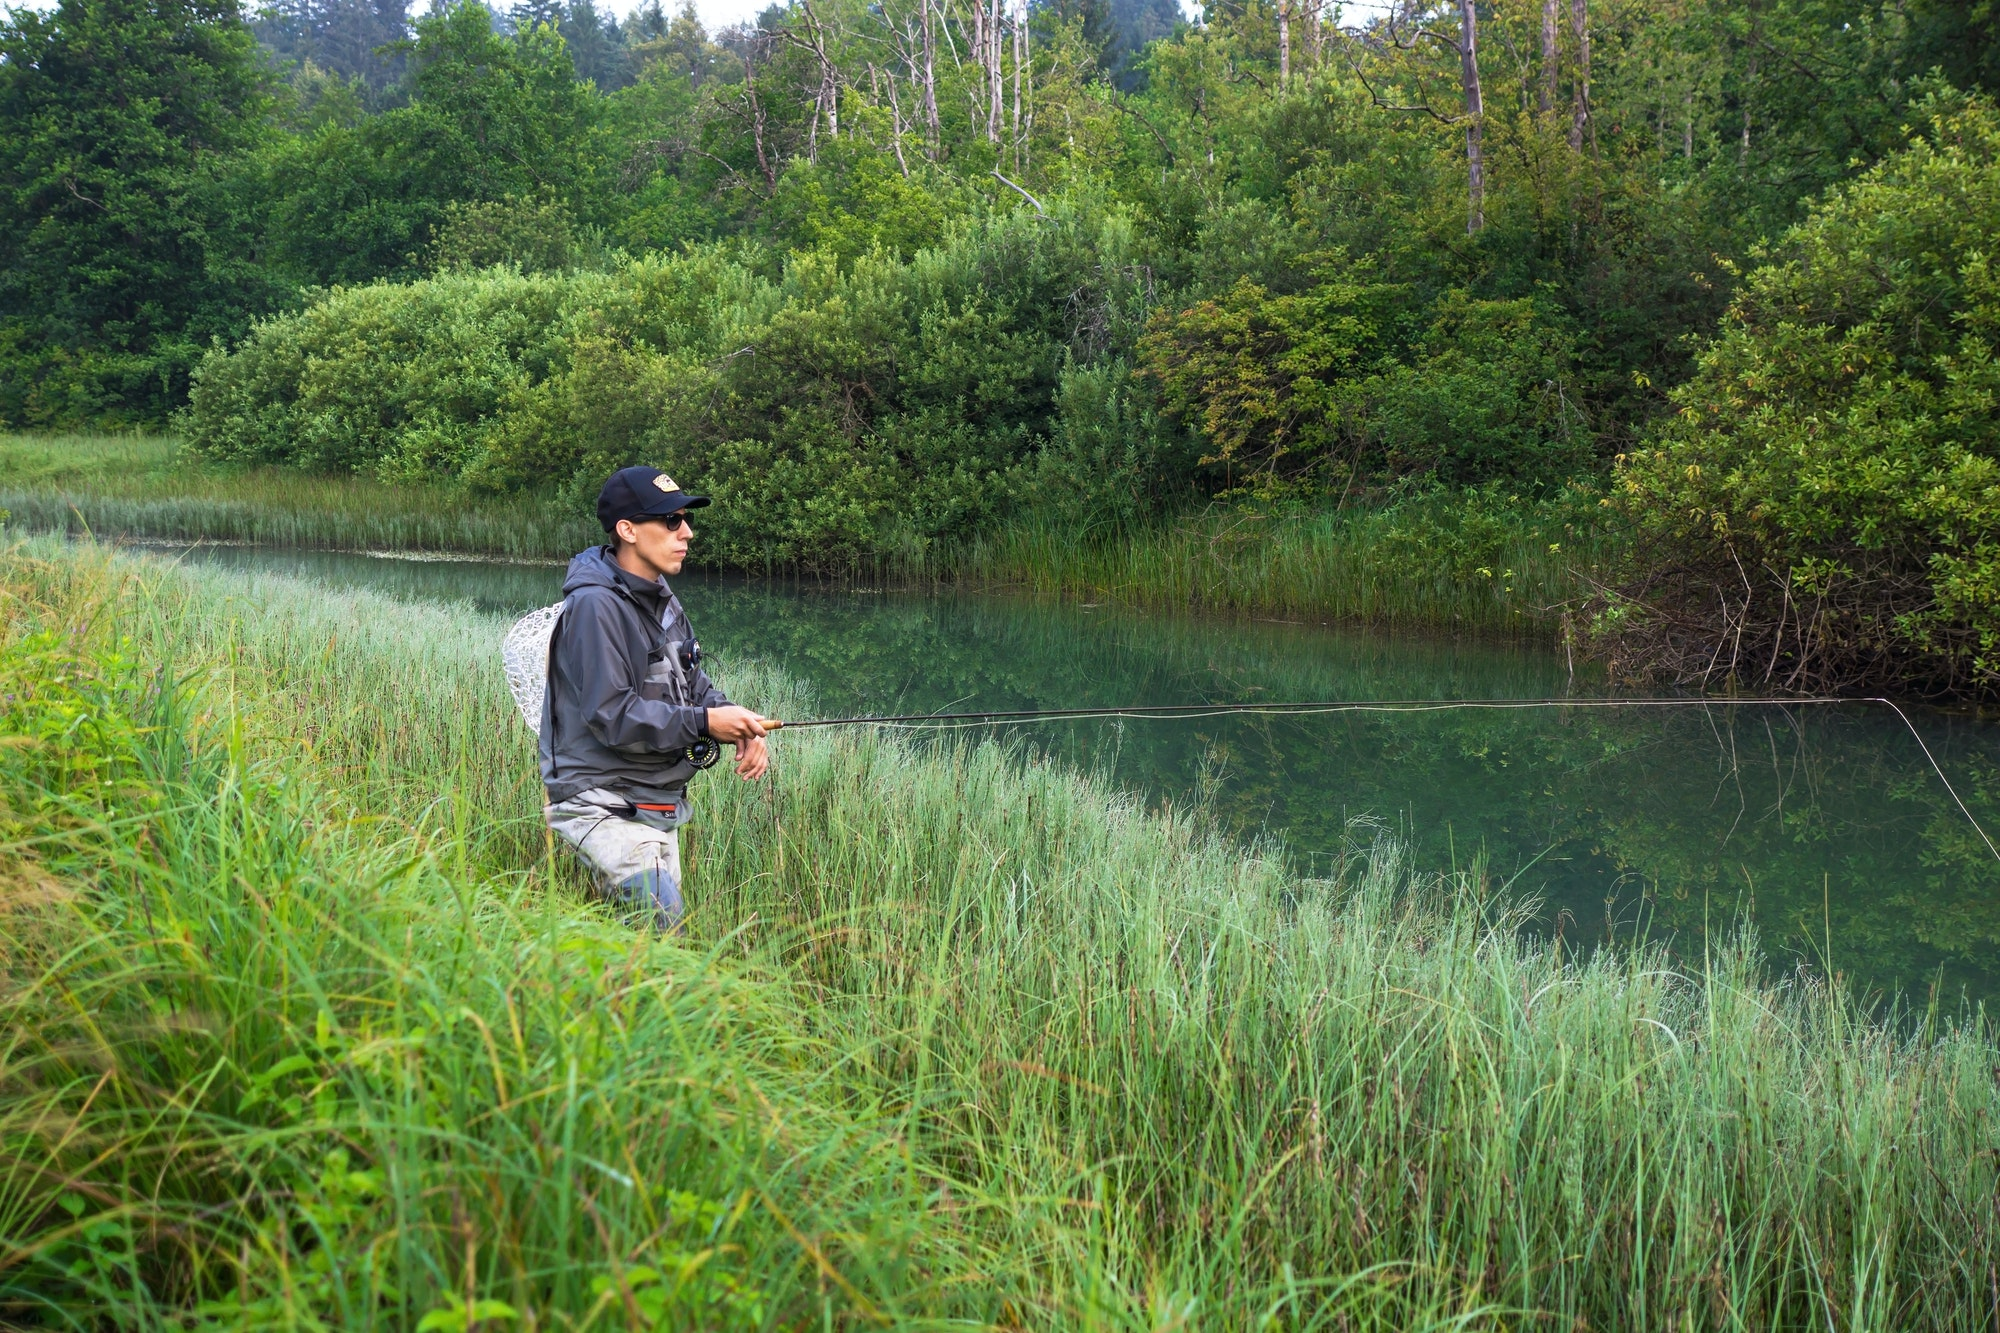 Industry Report: Fly fishing and recreation by the numbers